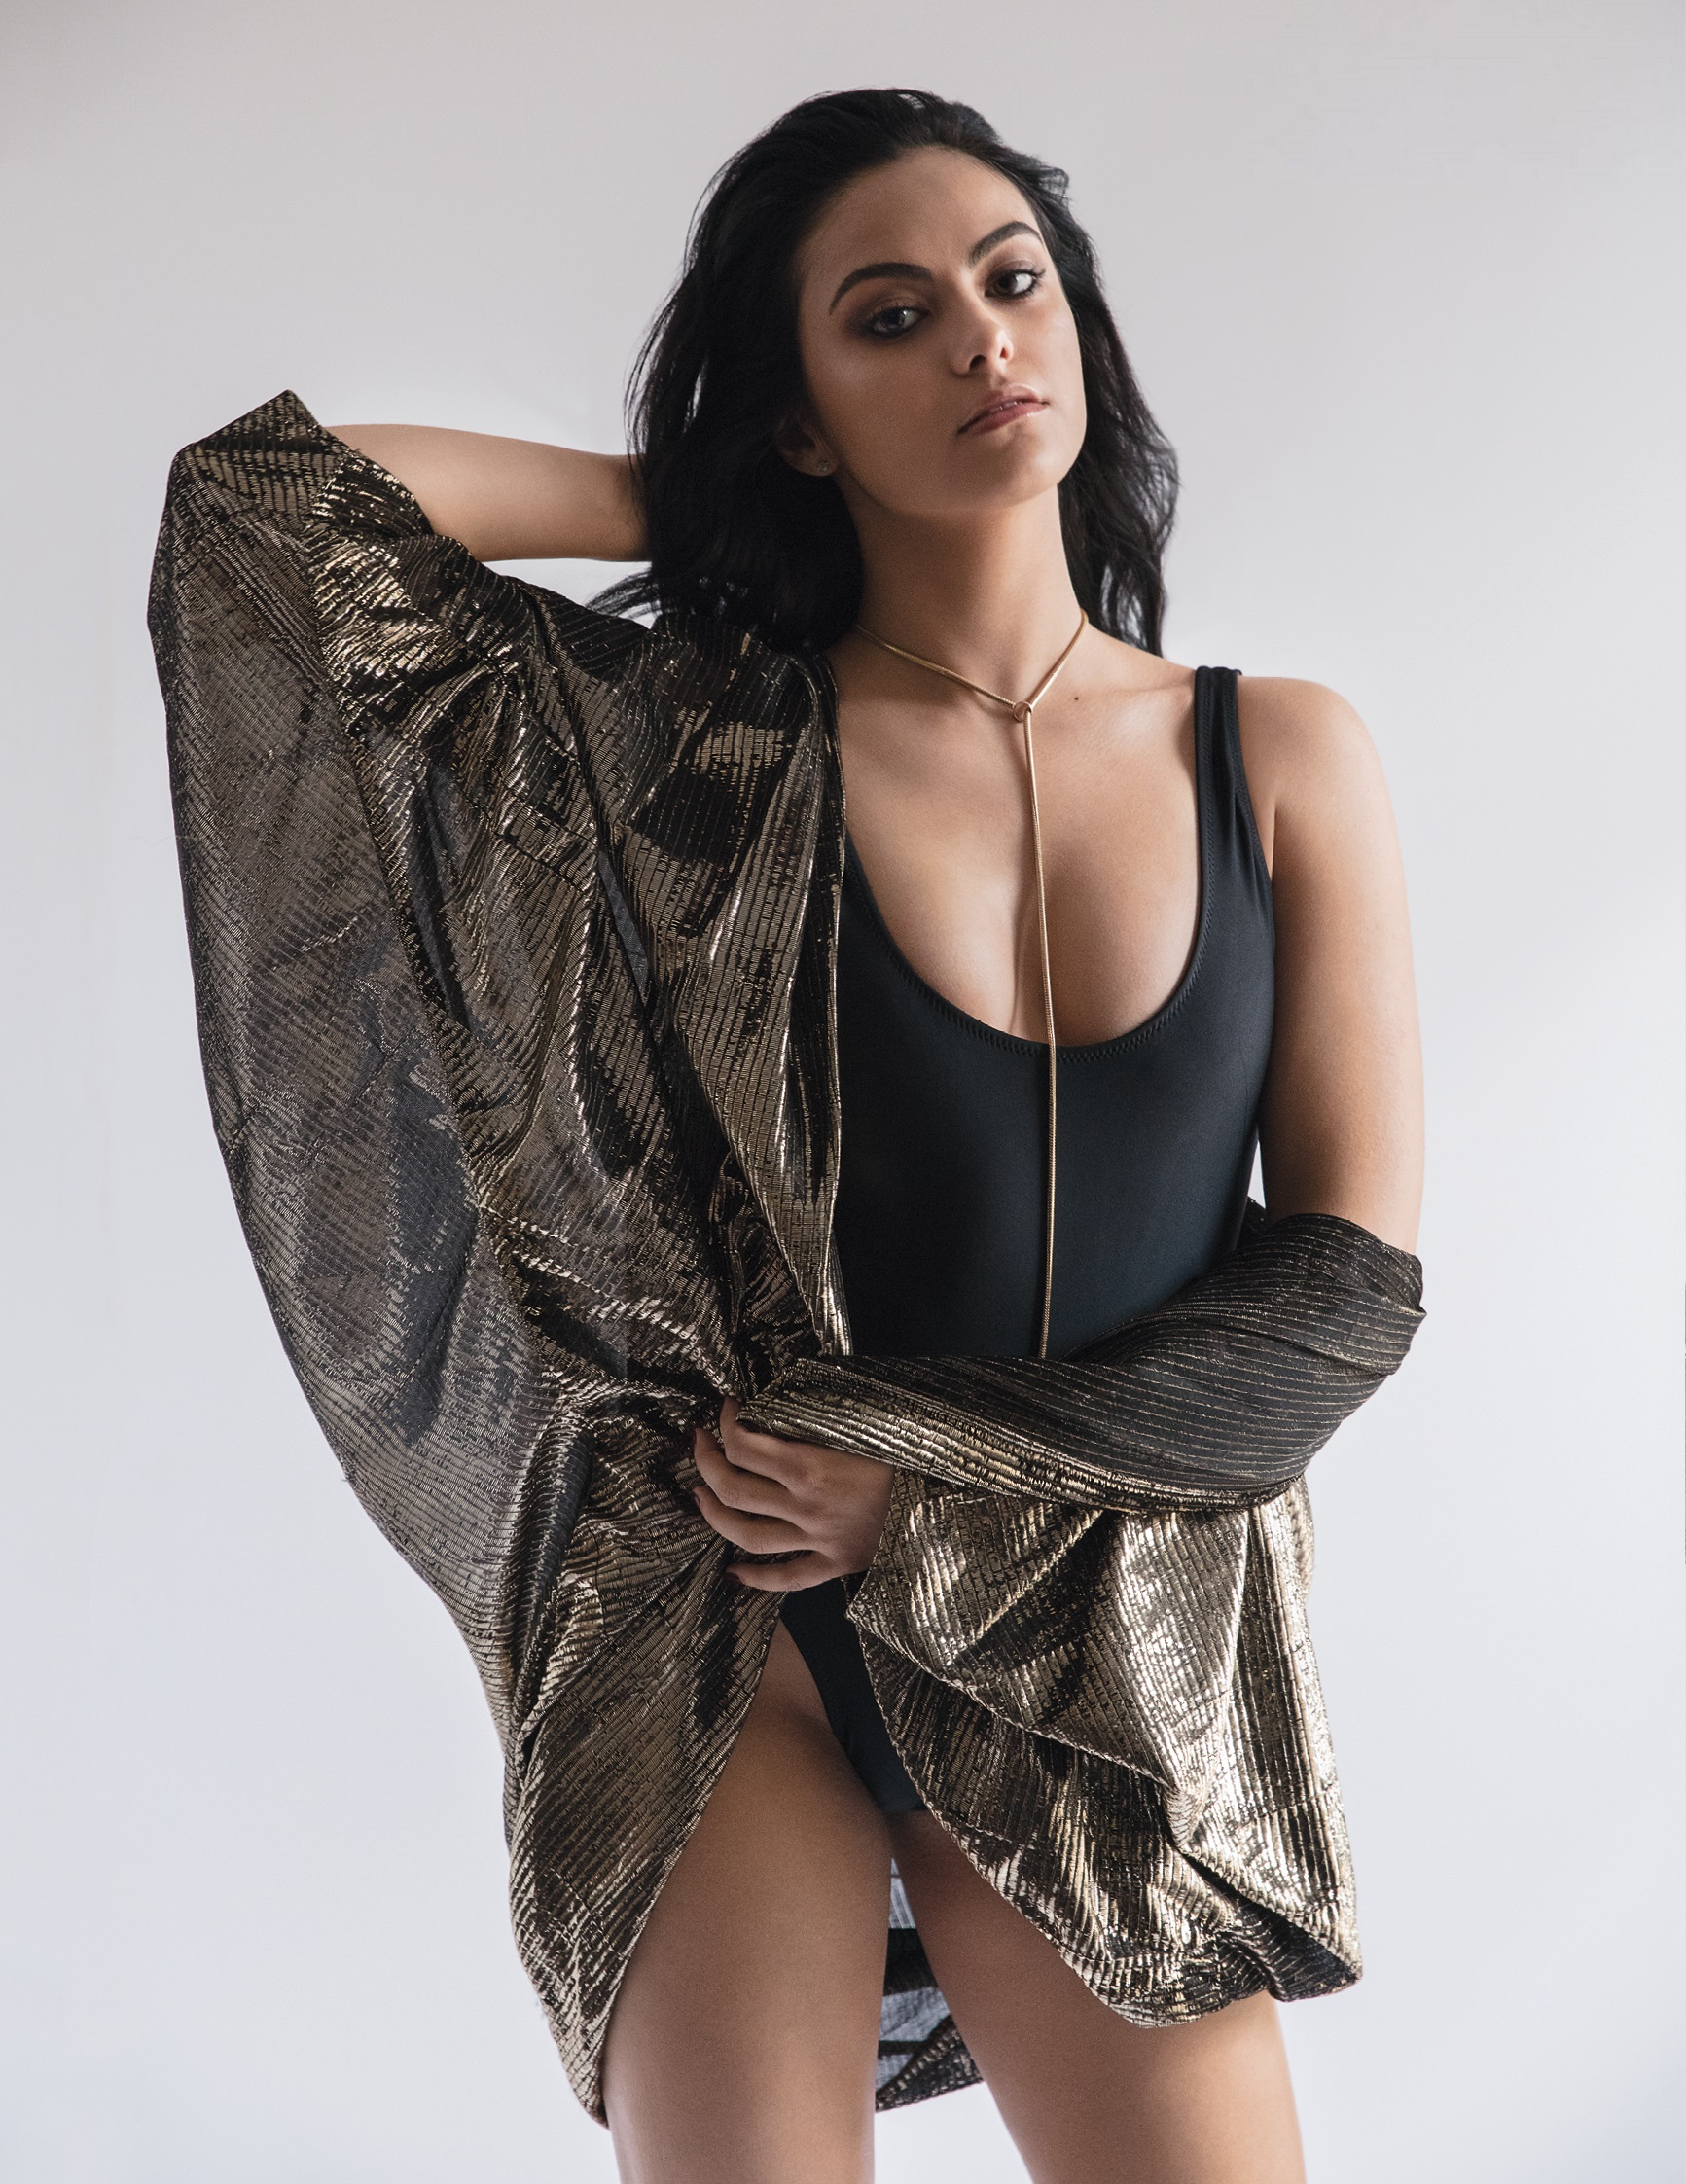 Cleavage Camila Mendes nudes (71 photos), Topless, Sideboobs, Instagram, butt 2020